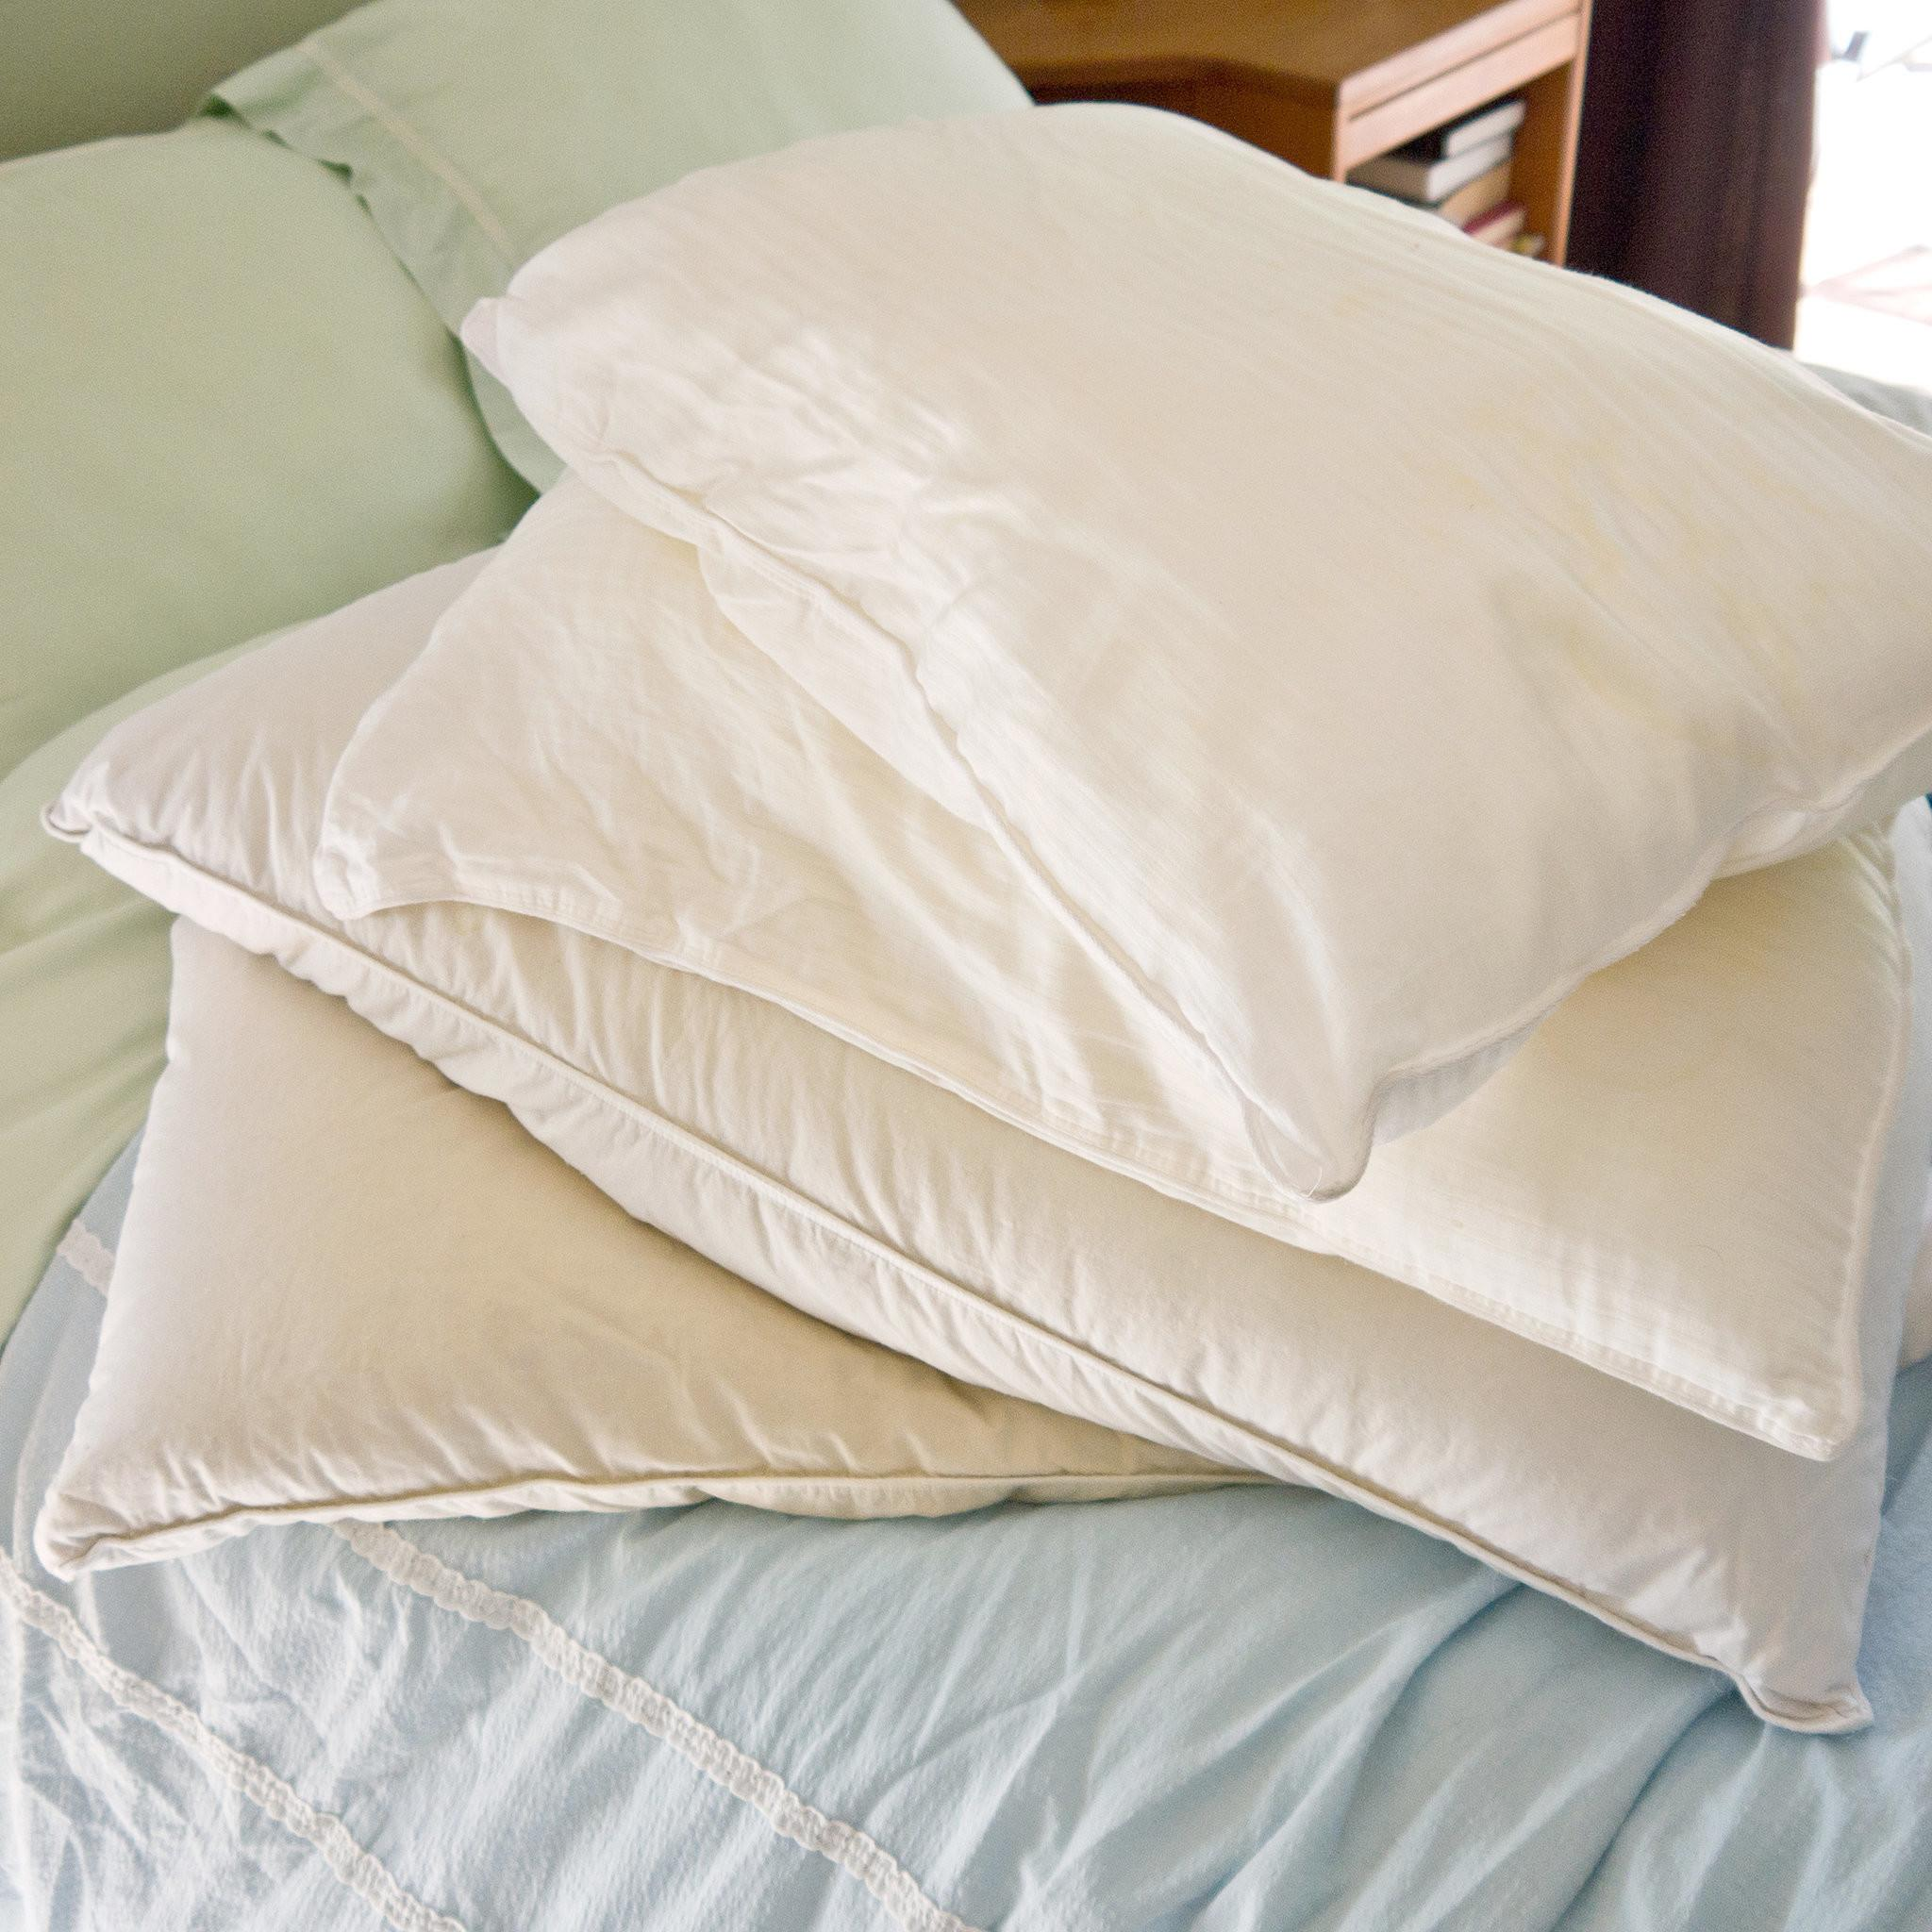 Wash Pair Pillows Together Which Keeps Machine